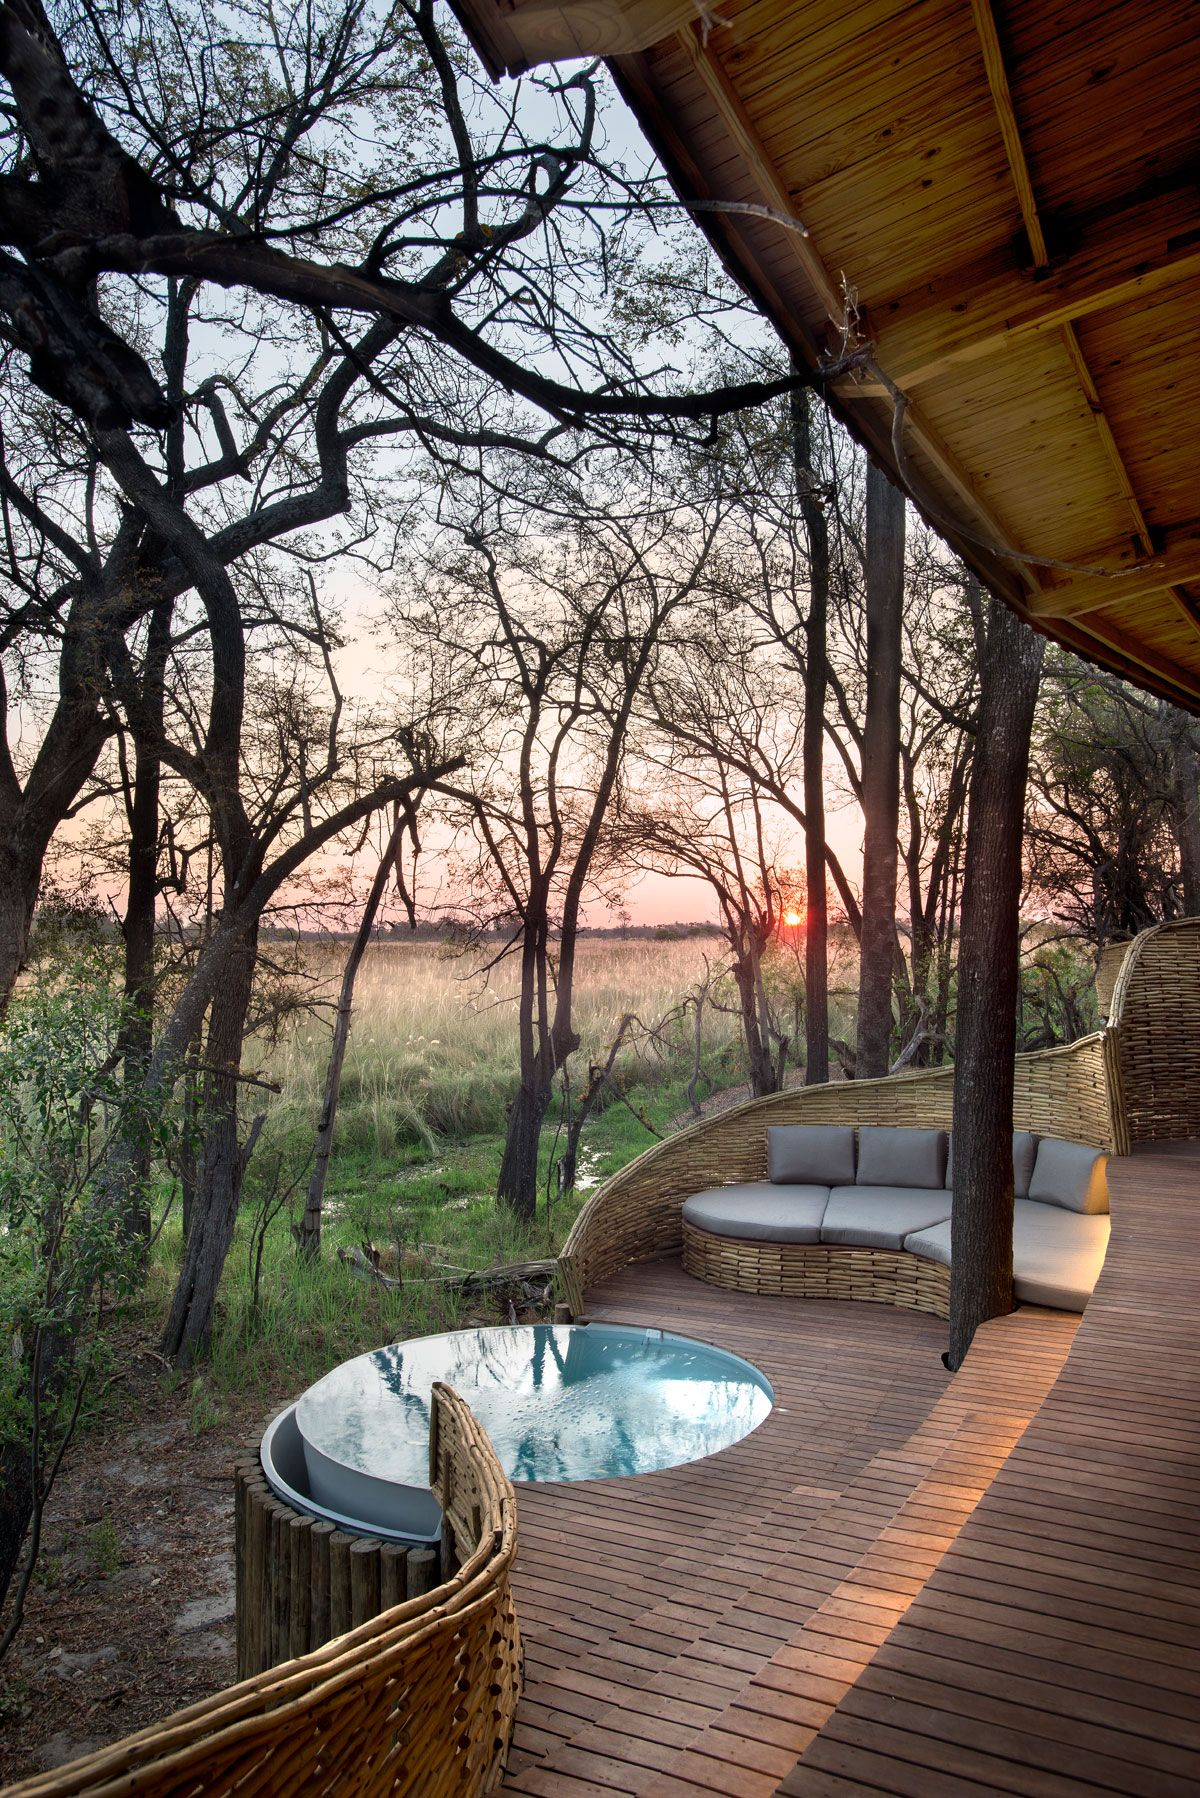 Agreable Where The Elephants Roam: Sandibe Safari Lodge By Fox Browne And Michaelis  Boyd